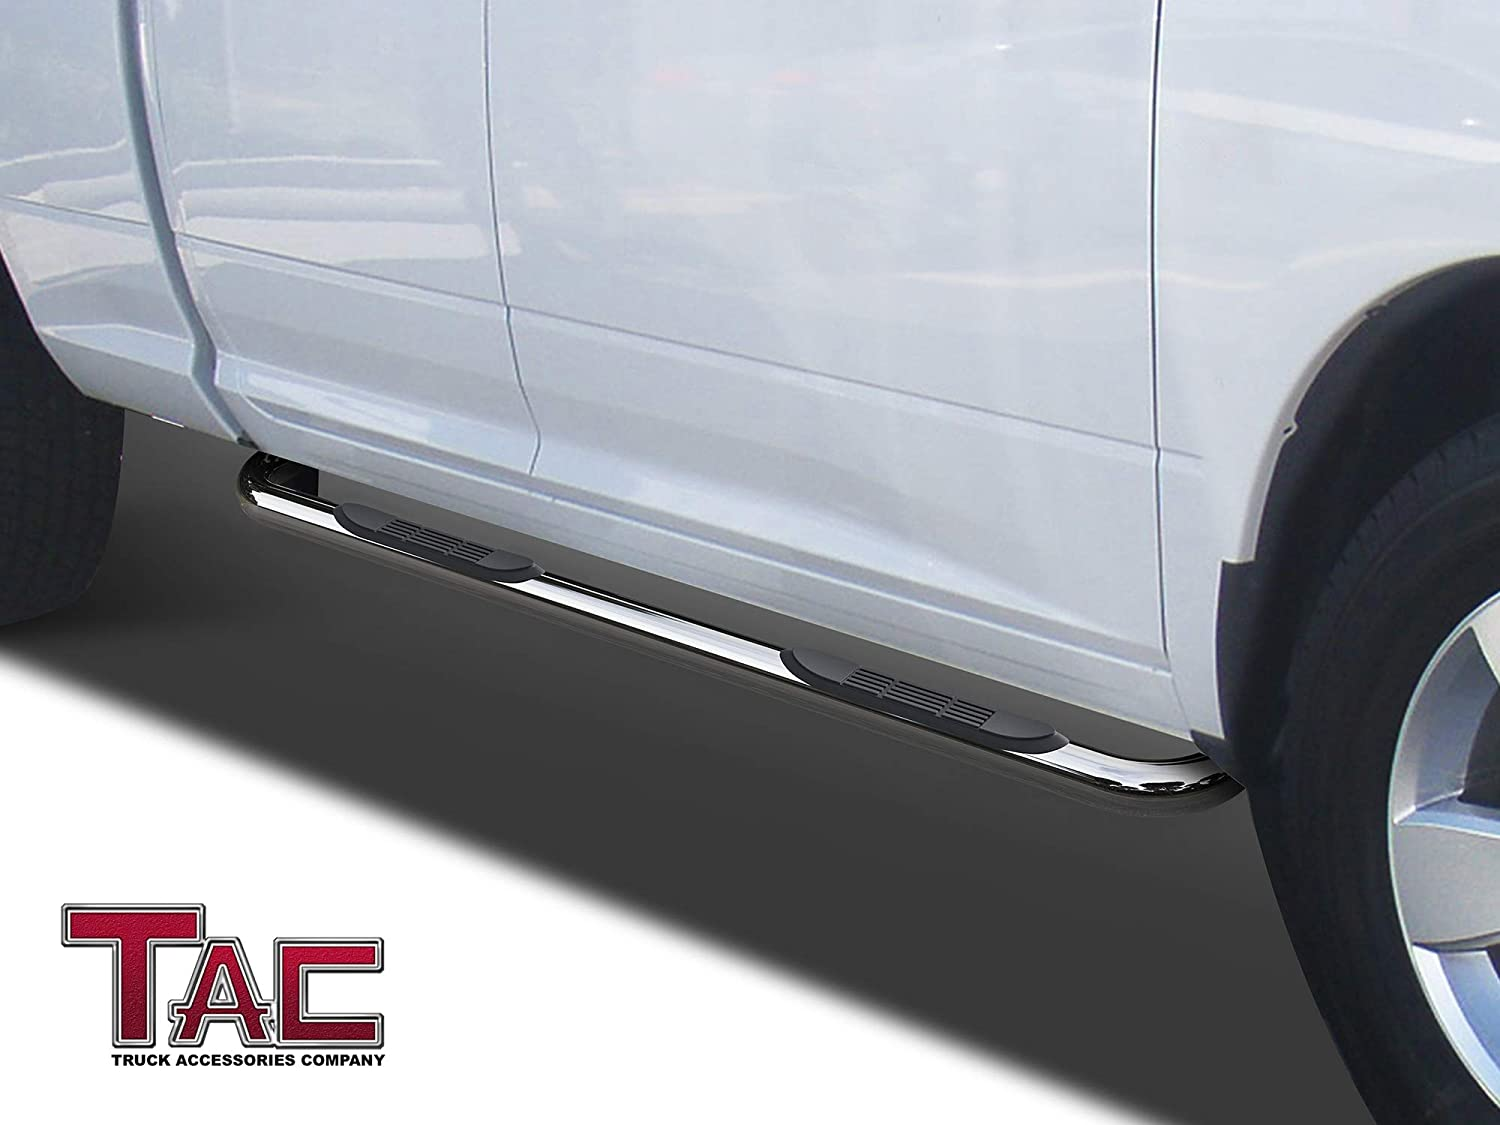 "Excl. 2019 Ram 1500 Classic TAC Side Steps Running Boards Fit 2019 Dodge Ram 1500 Crew Cab Truck Pickup 3/"" Black Side Bars Nerf Bars Step Rails Running Boards Off Road Exterior Accessories 2 Pieces"